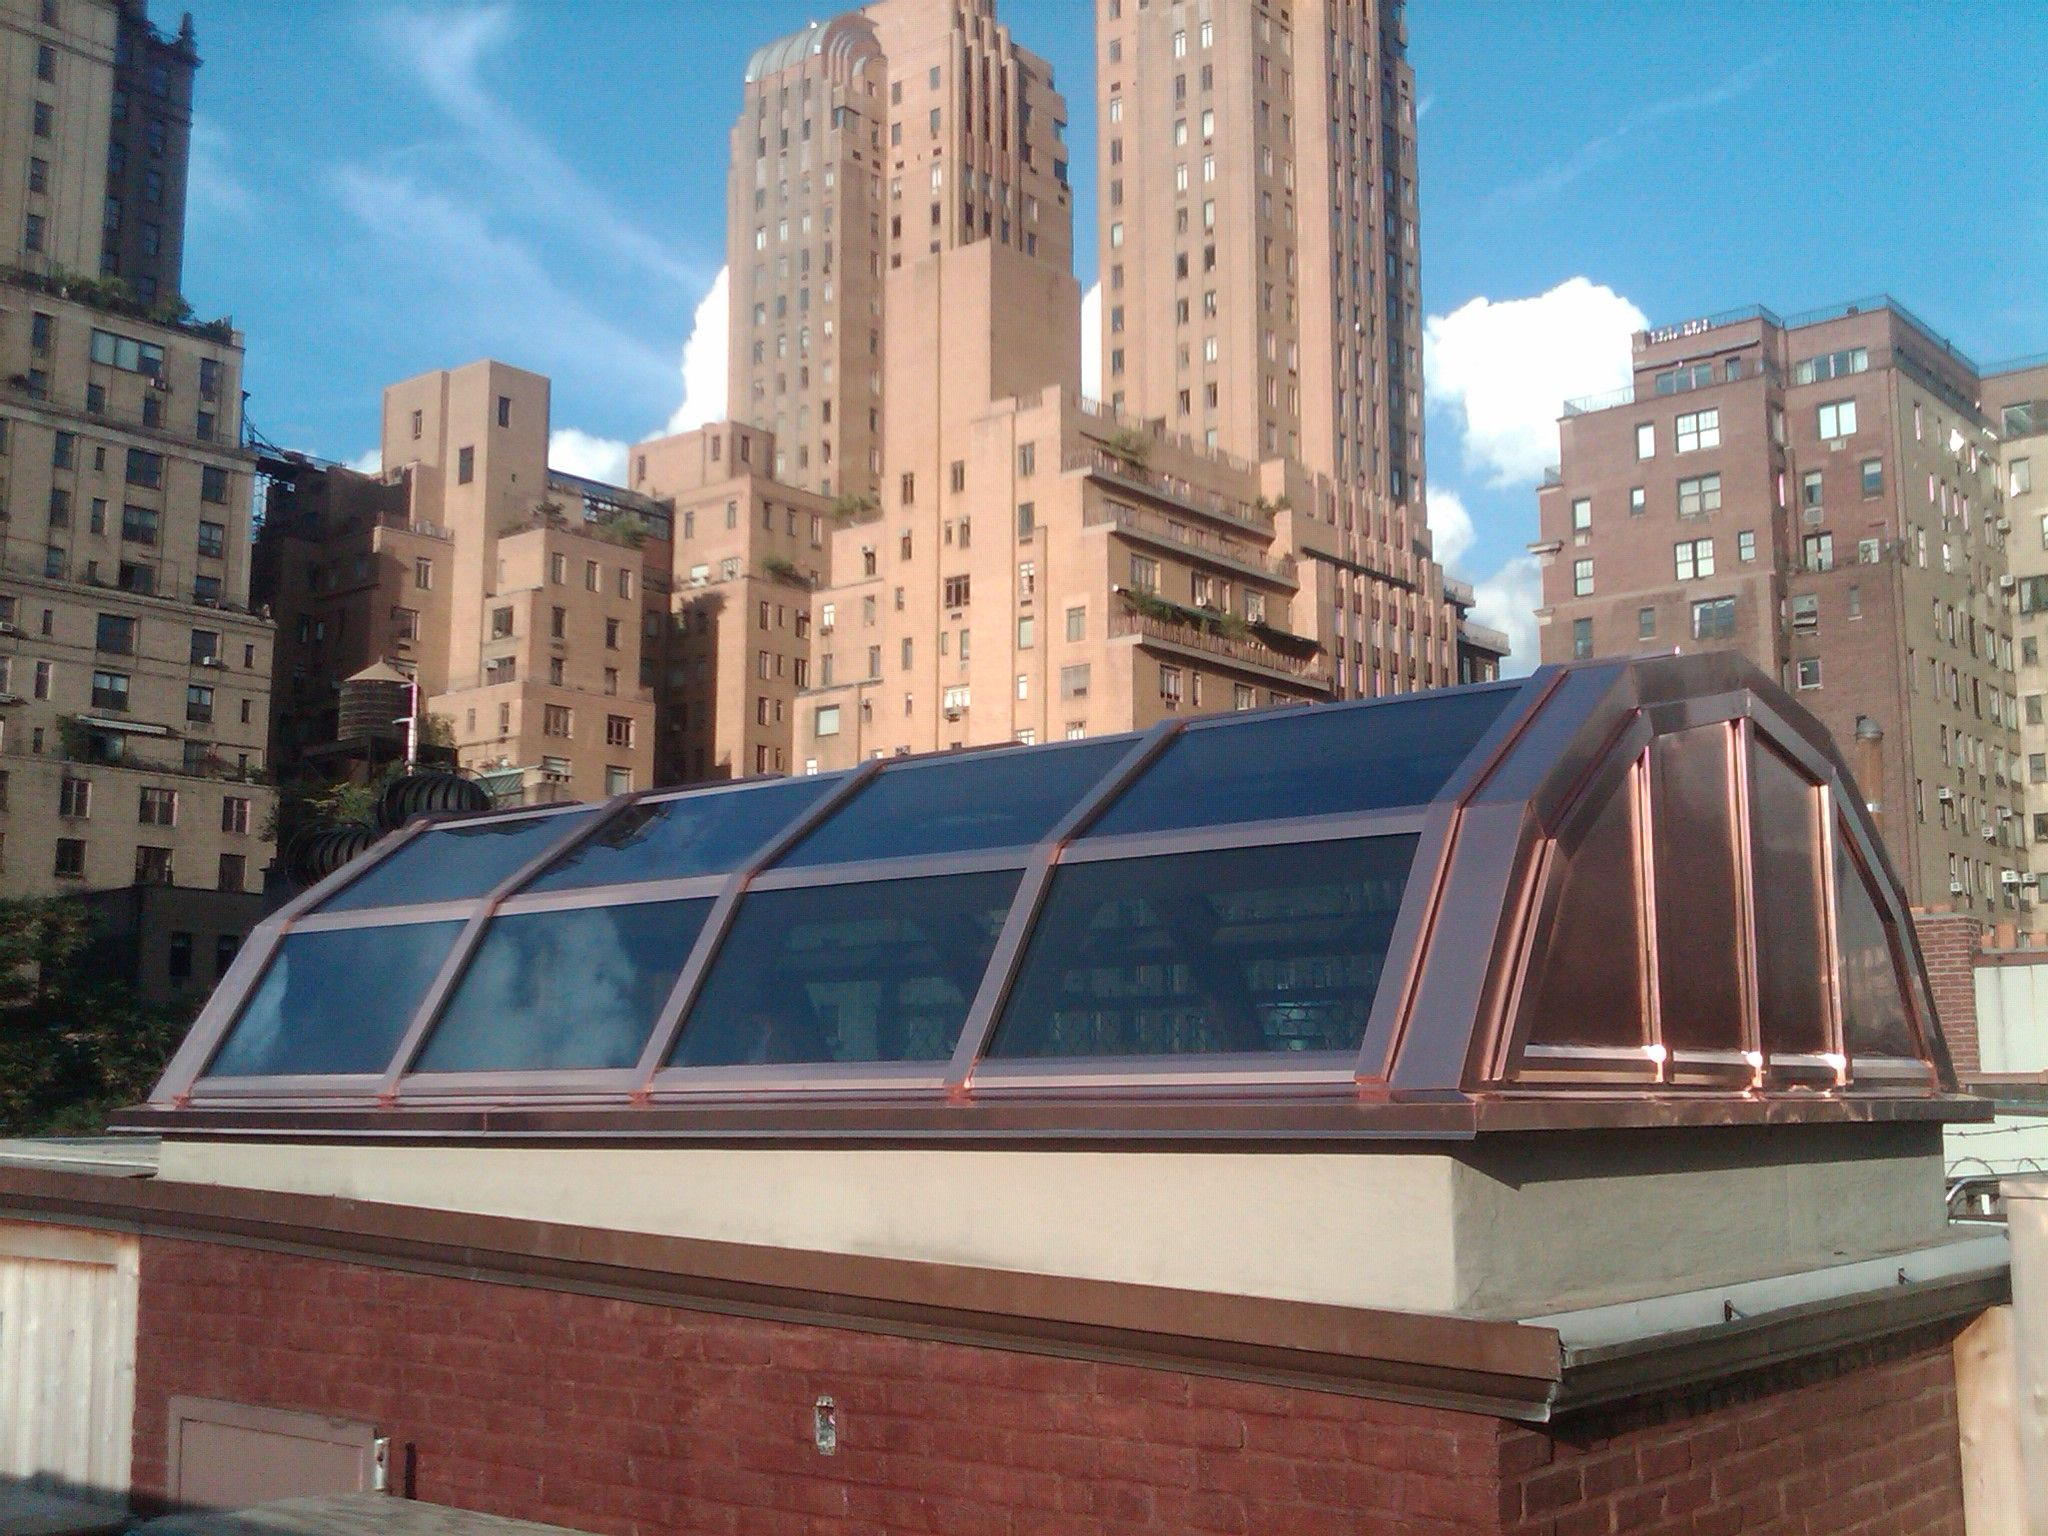 Copper Clad Segmented Radiused Skylight Used To Bring Natural Daylight Into A Room Below Skylight Vented Skylights Roof Solar Panel